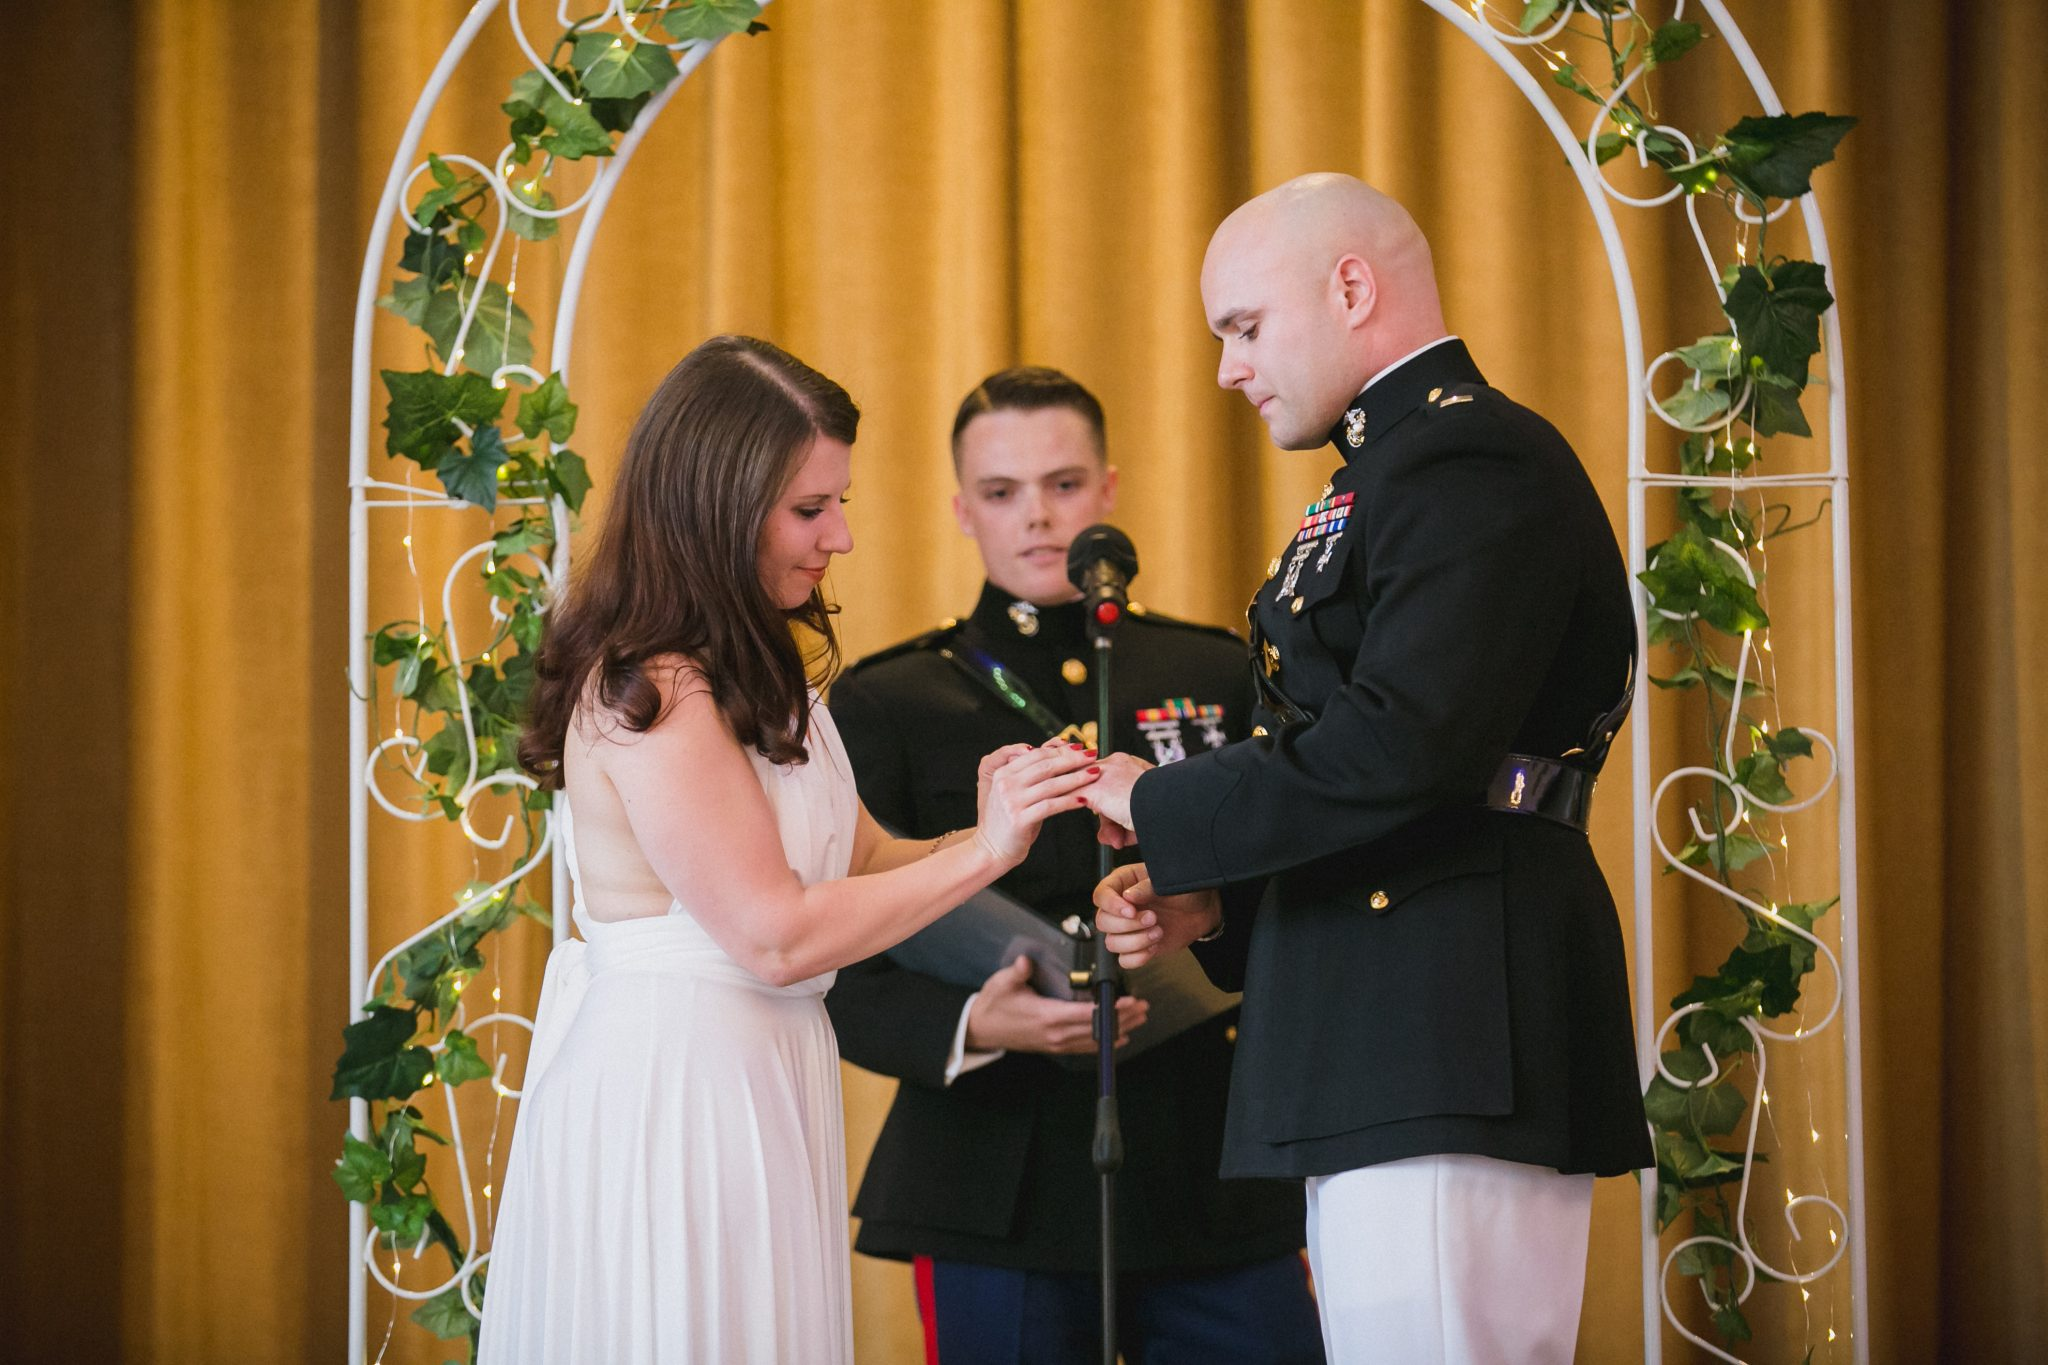 Bride placing wedding ring on the groom during the ceremony